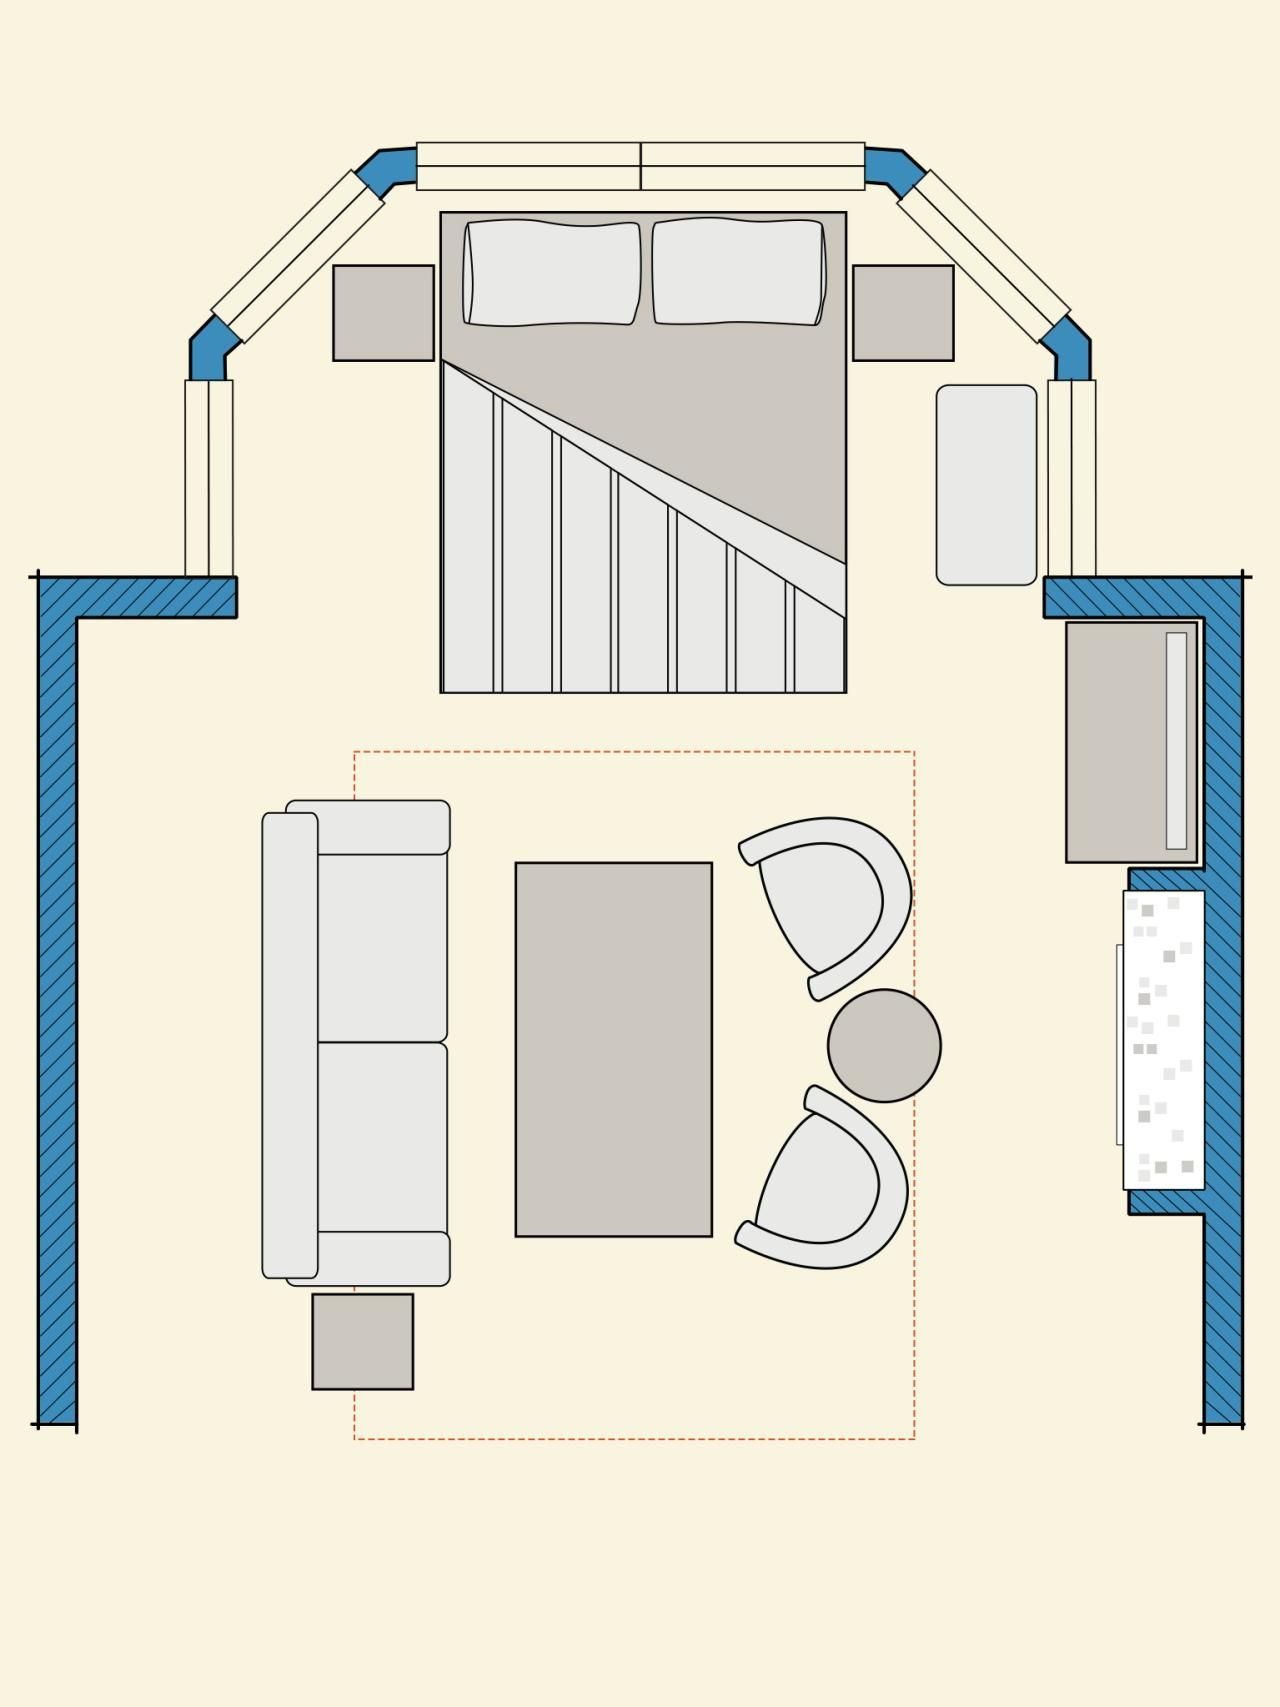 Bedroom Floor Plans Bedroom Floor Plans Bedroom Flooring Large Bedroom Layout